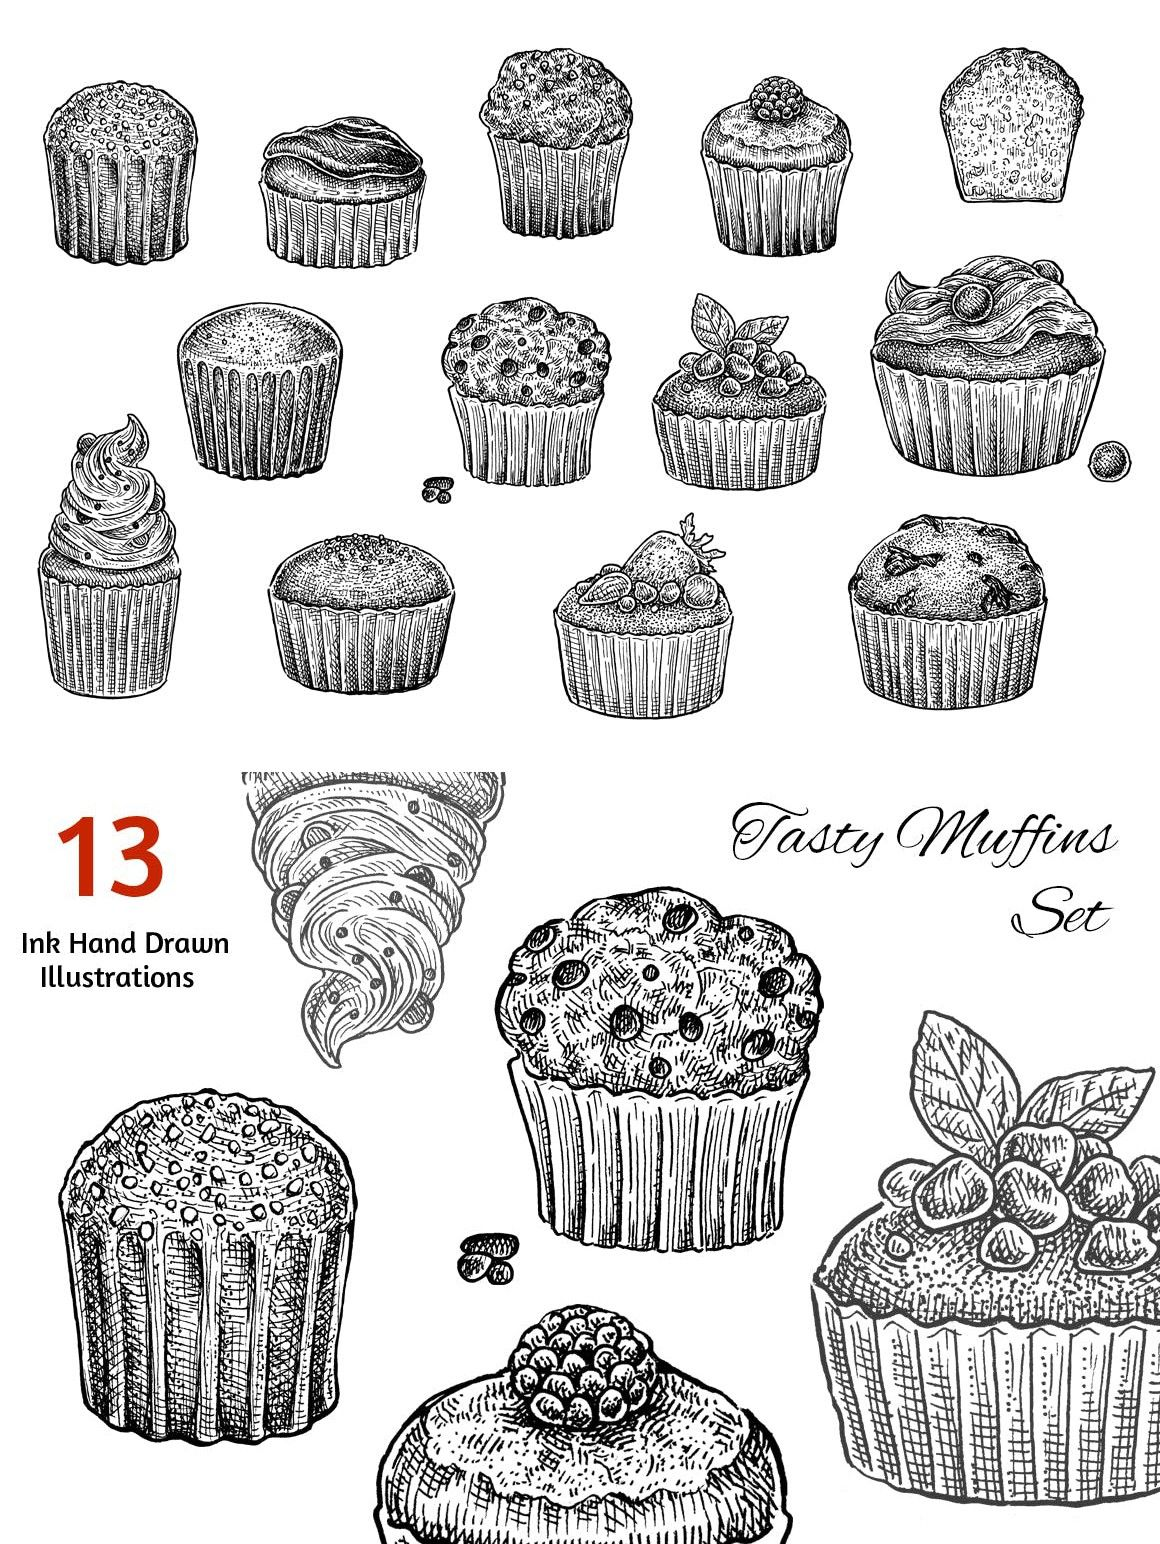 Muffins Collection | Digital drawing, Stock illustration ...